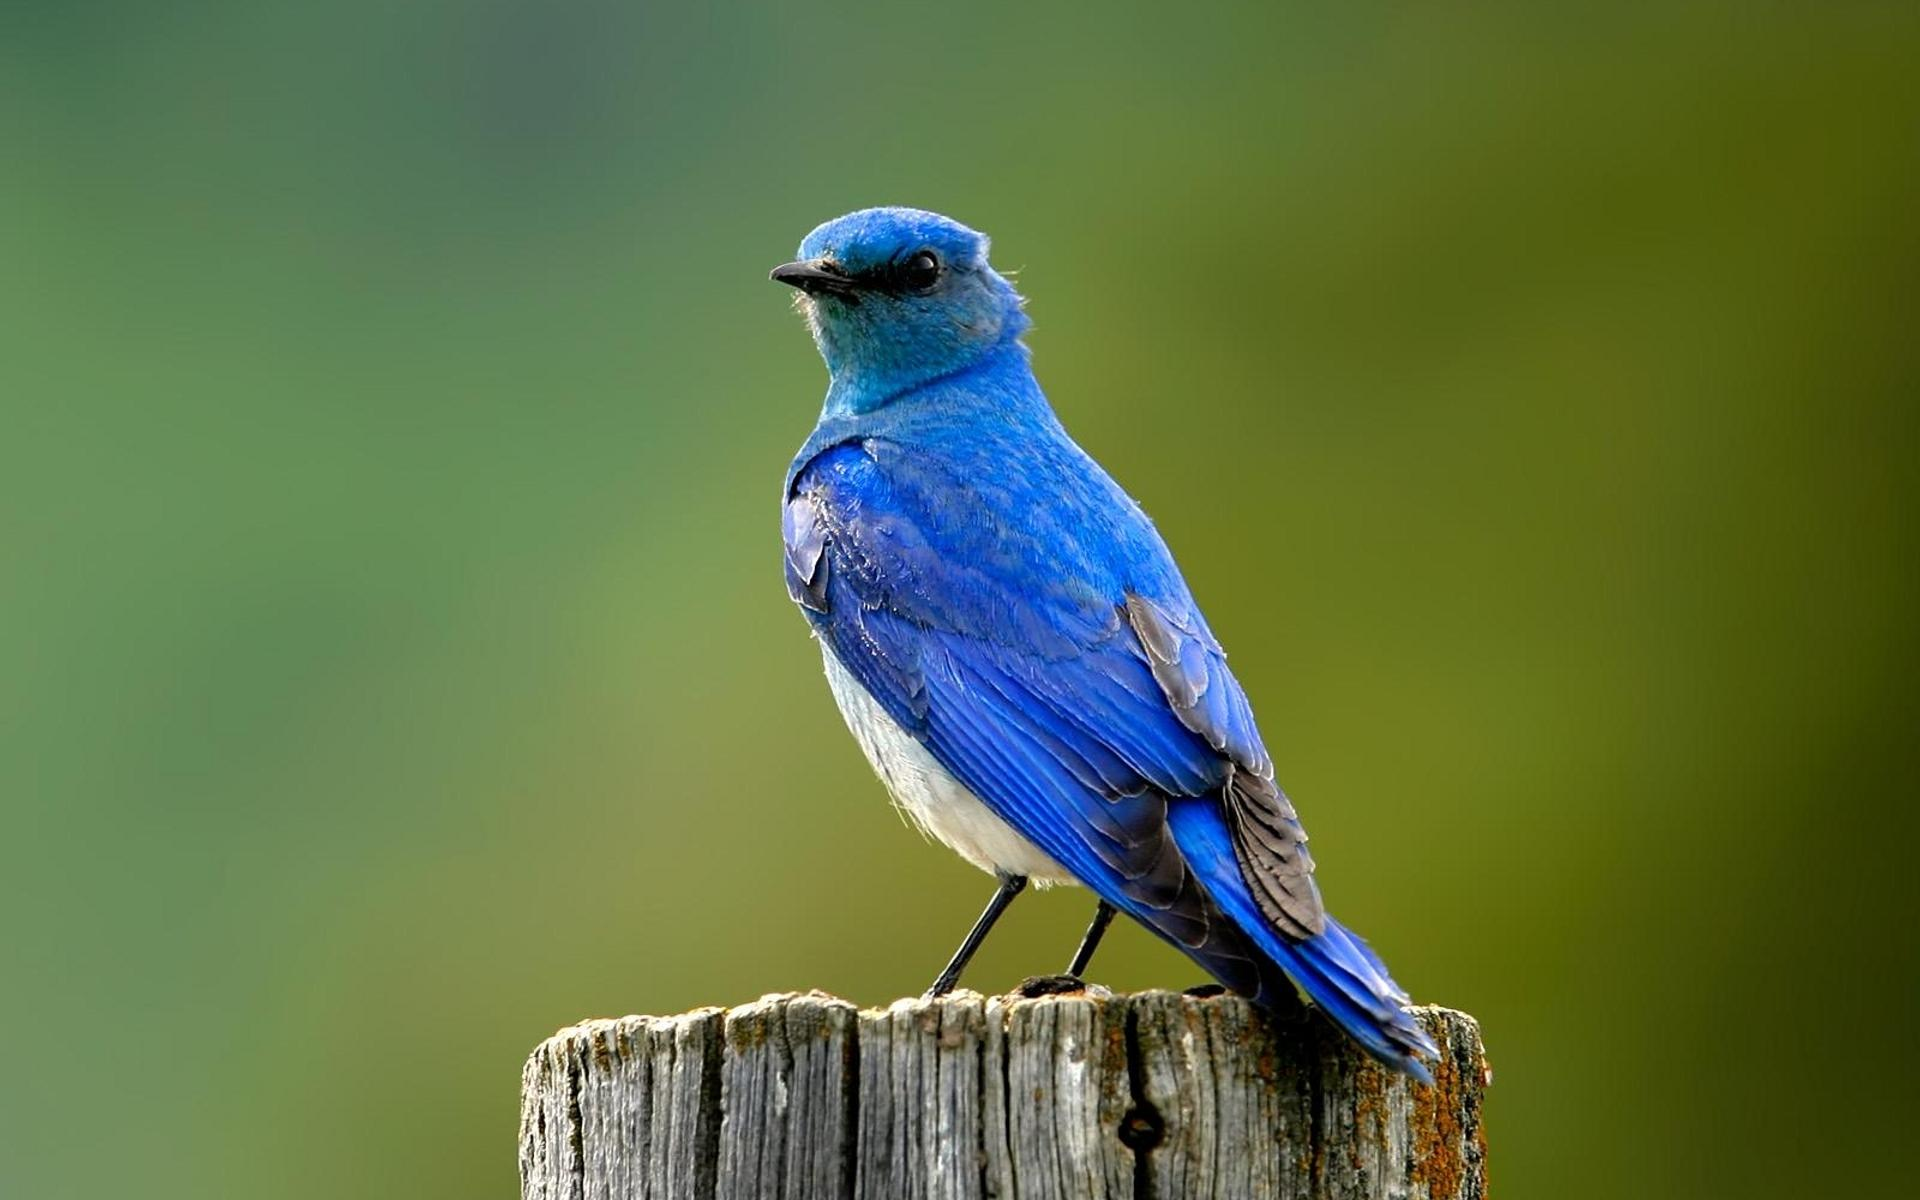 Full Hd Birds Wallpapers Full Hd Pictures